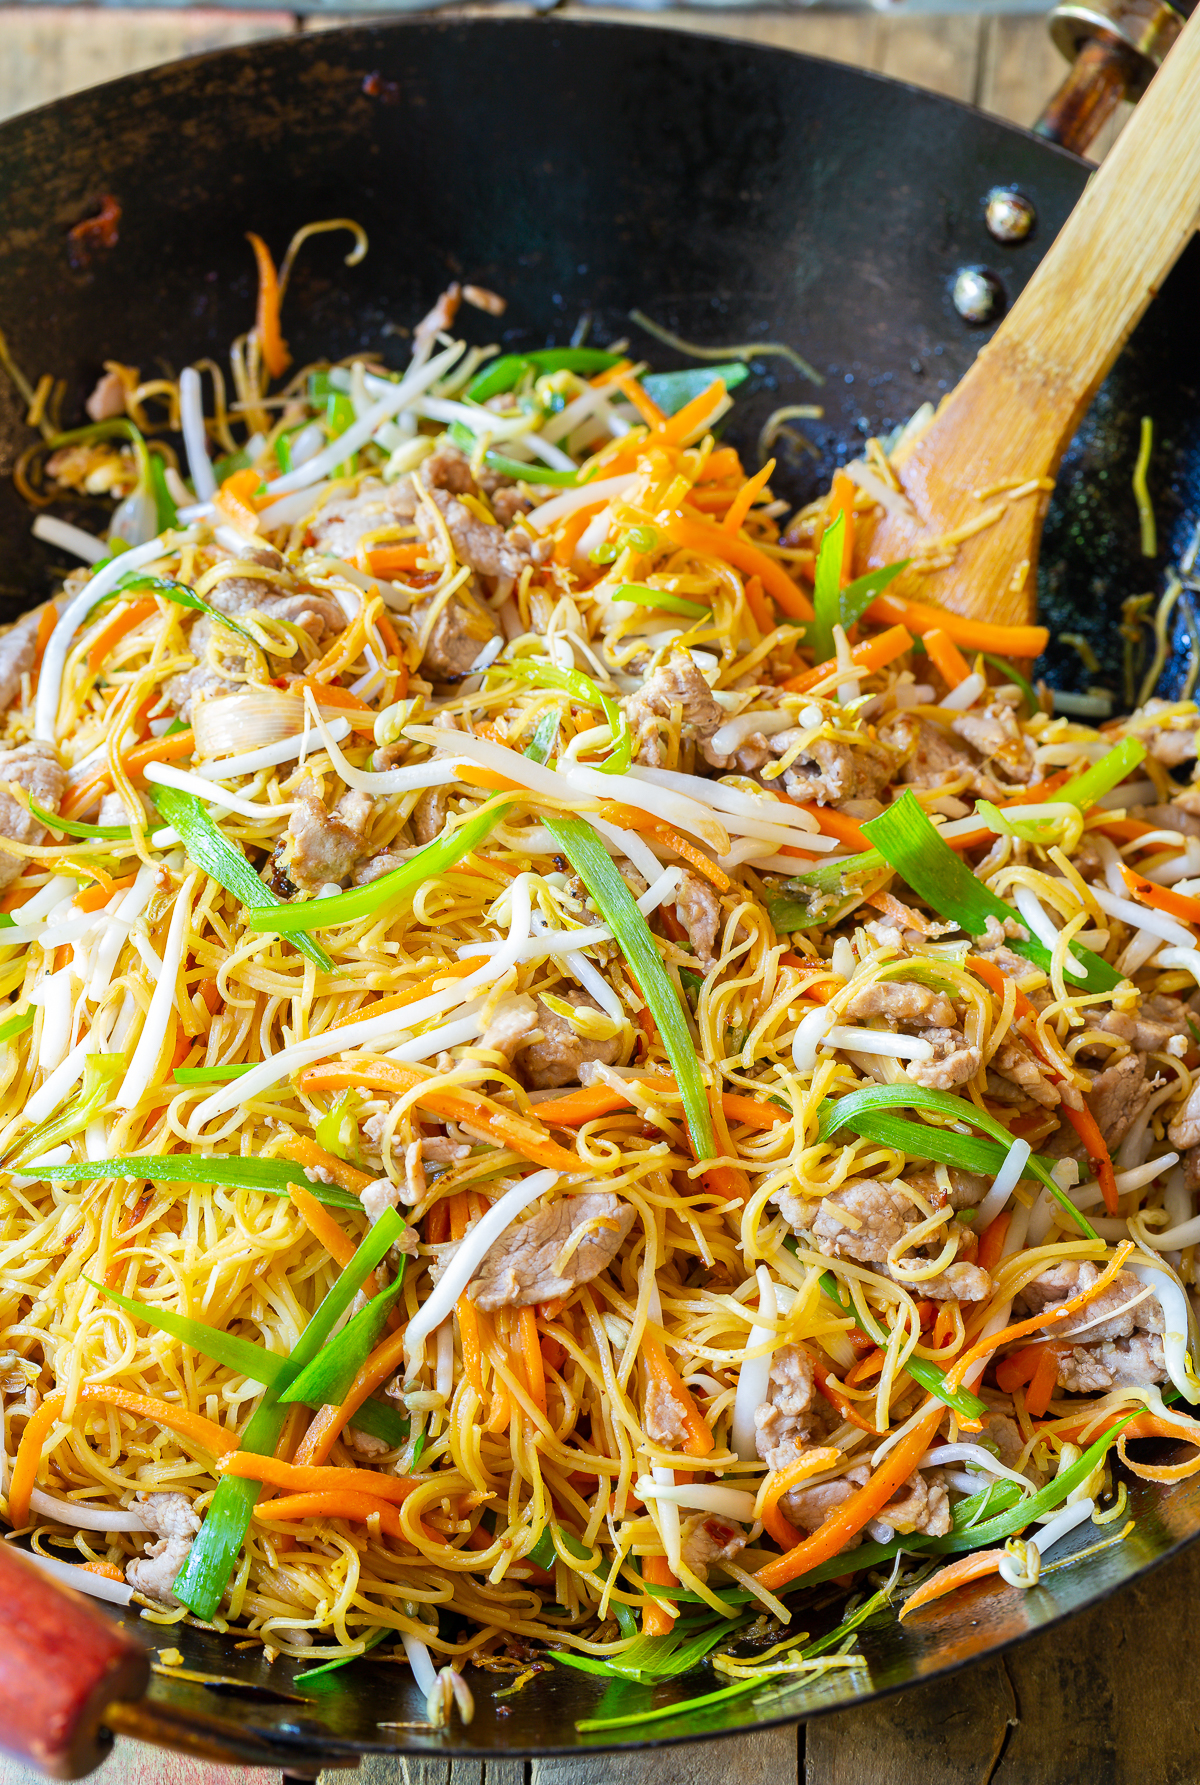 Cantonese Pan Fried Noodles (Pork Lo Mein) - Our pan fried noodles AKA pork lo mein recipe is savory, slightly spicy, and packed with flavor. Made with fresh veggies and stir fried pork, it's a light and healthy dish that's easy to make in only 30 minutes! #cantonesenoodles #panfriednoodles #lomein #porklomein #aspicyperspective